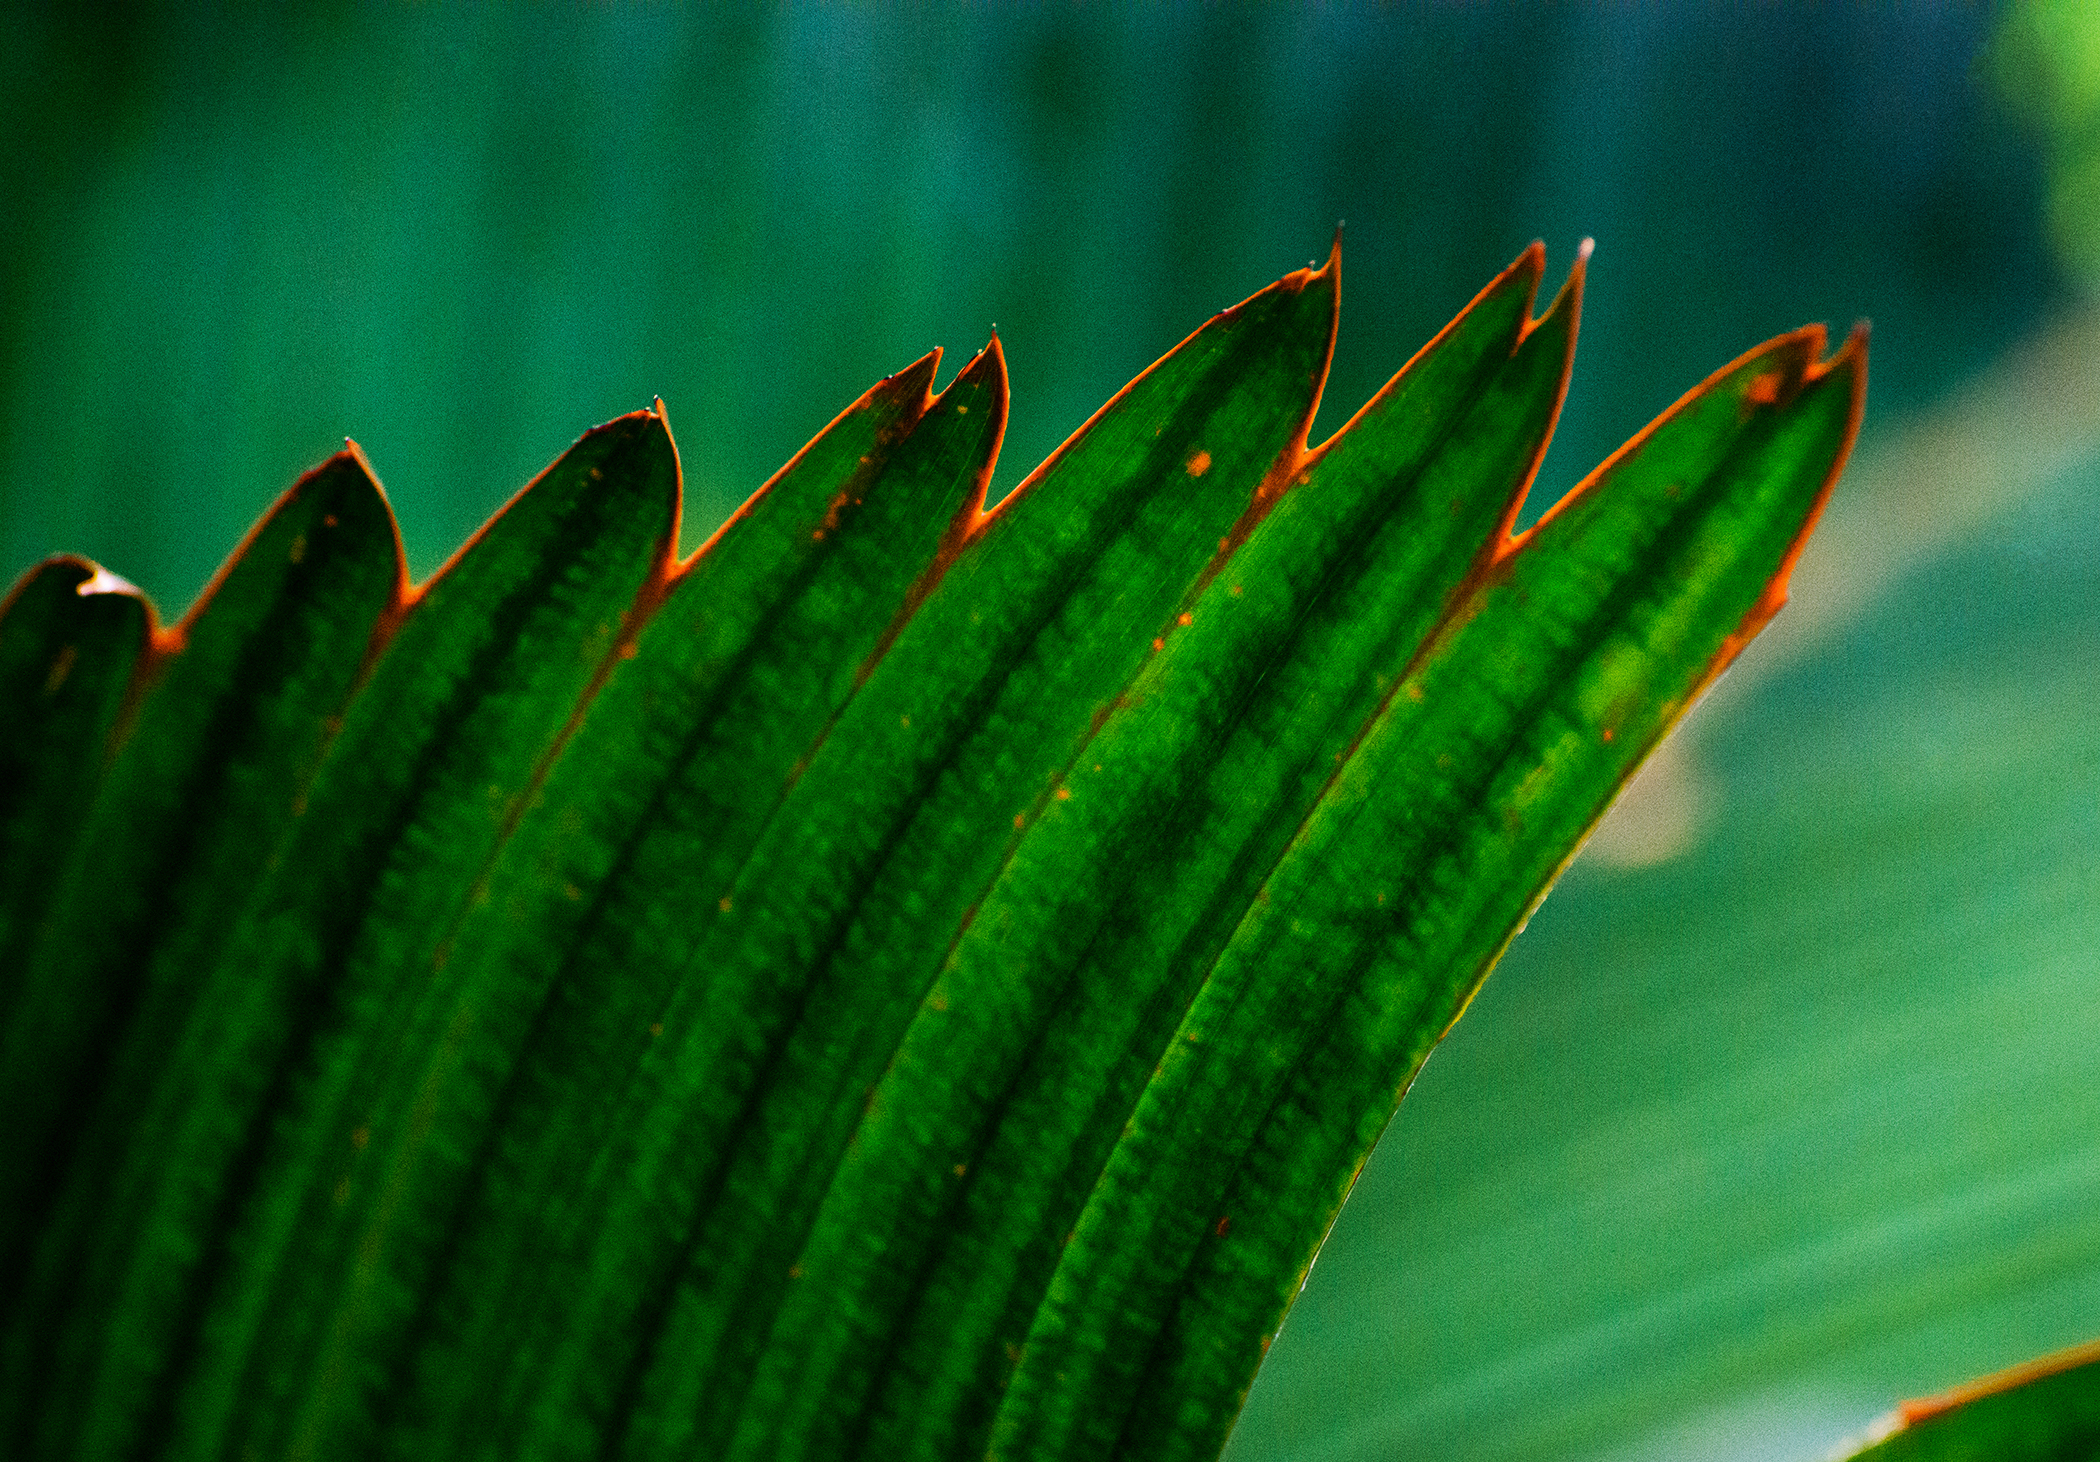 Abstract in Nature #59